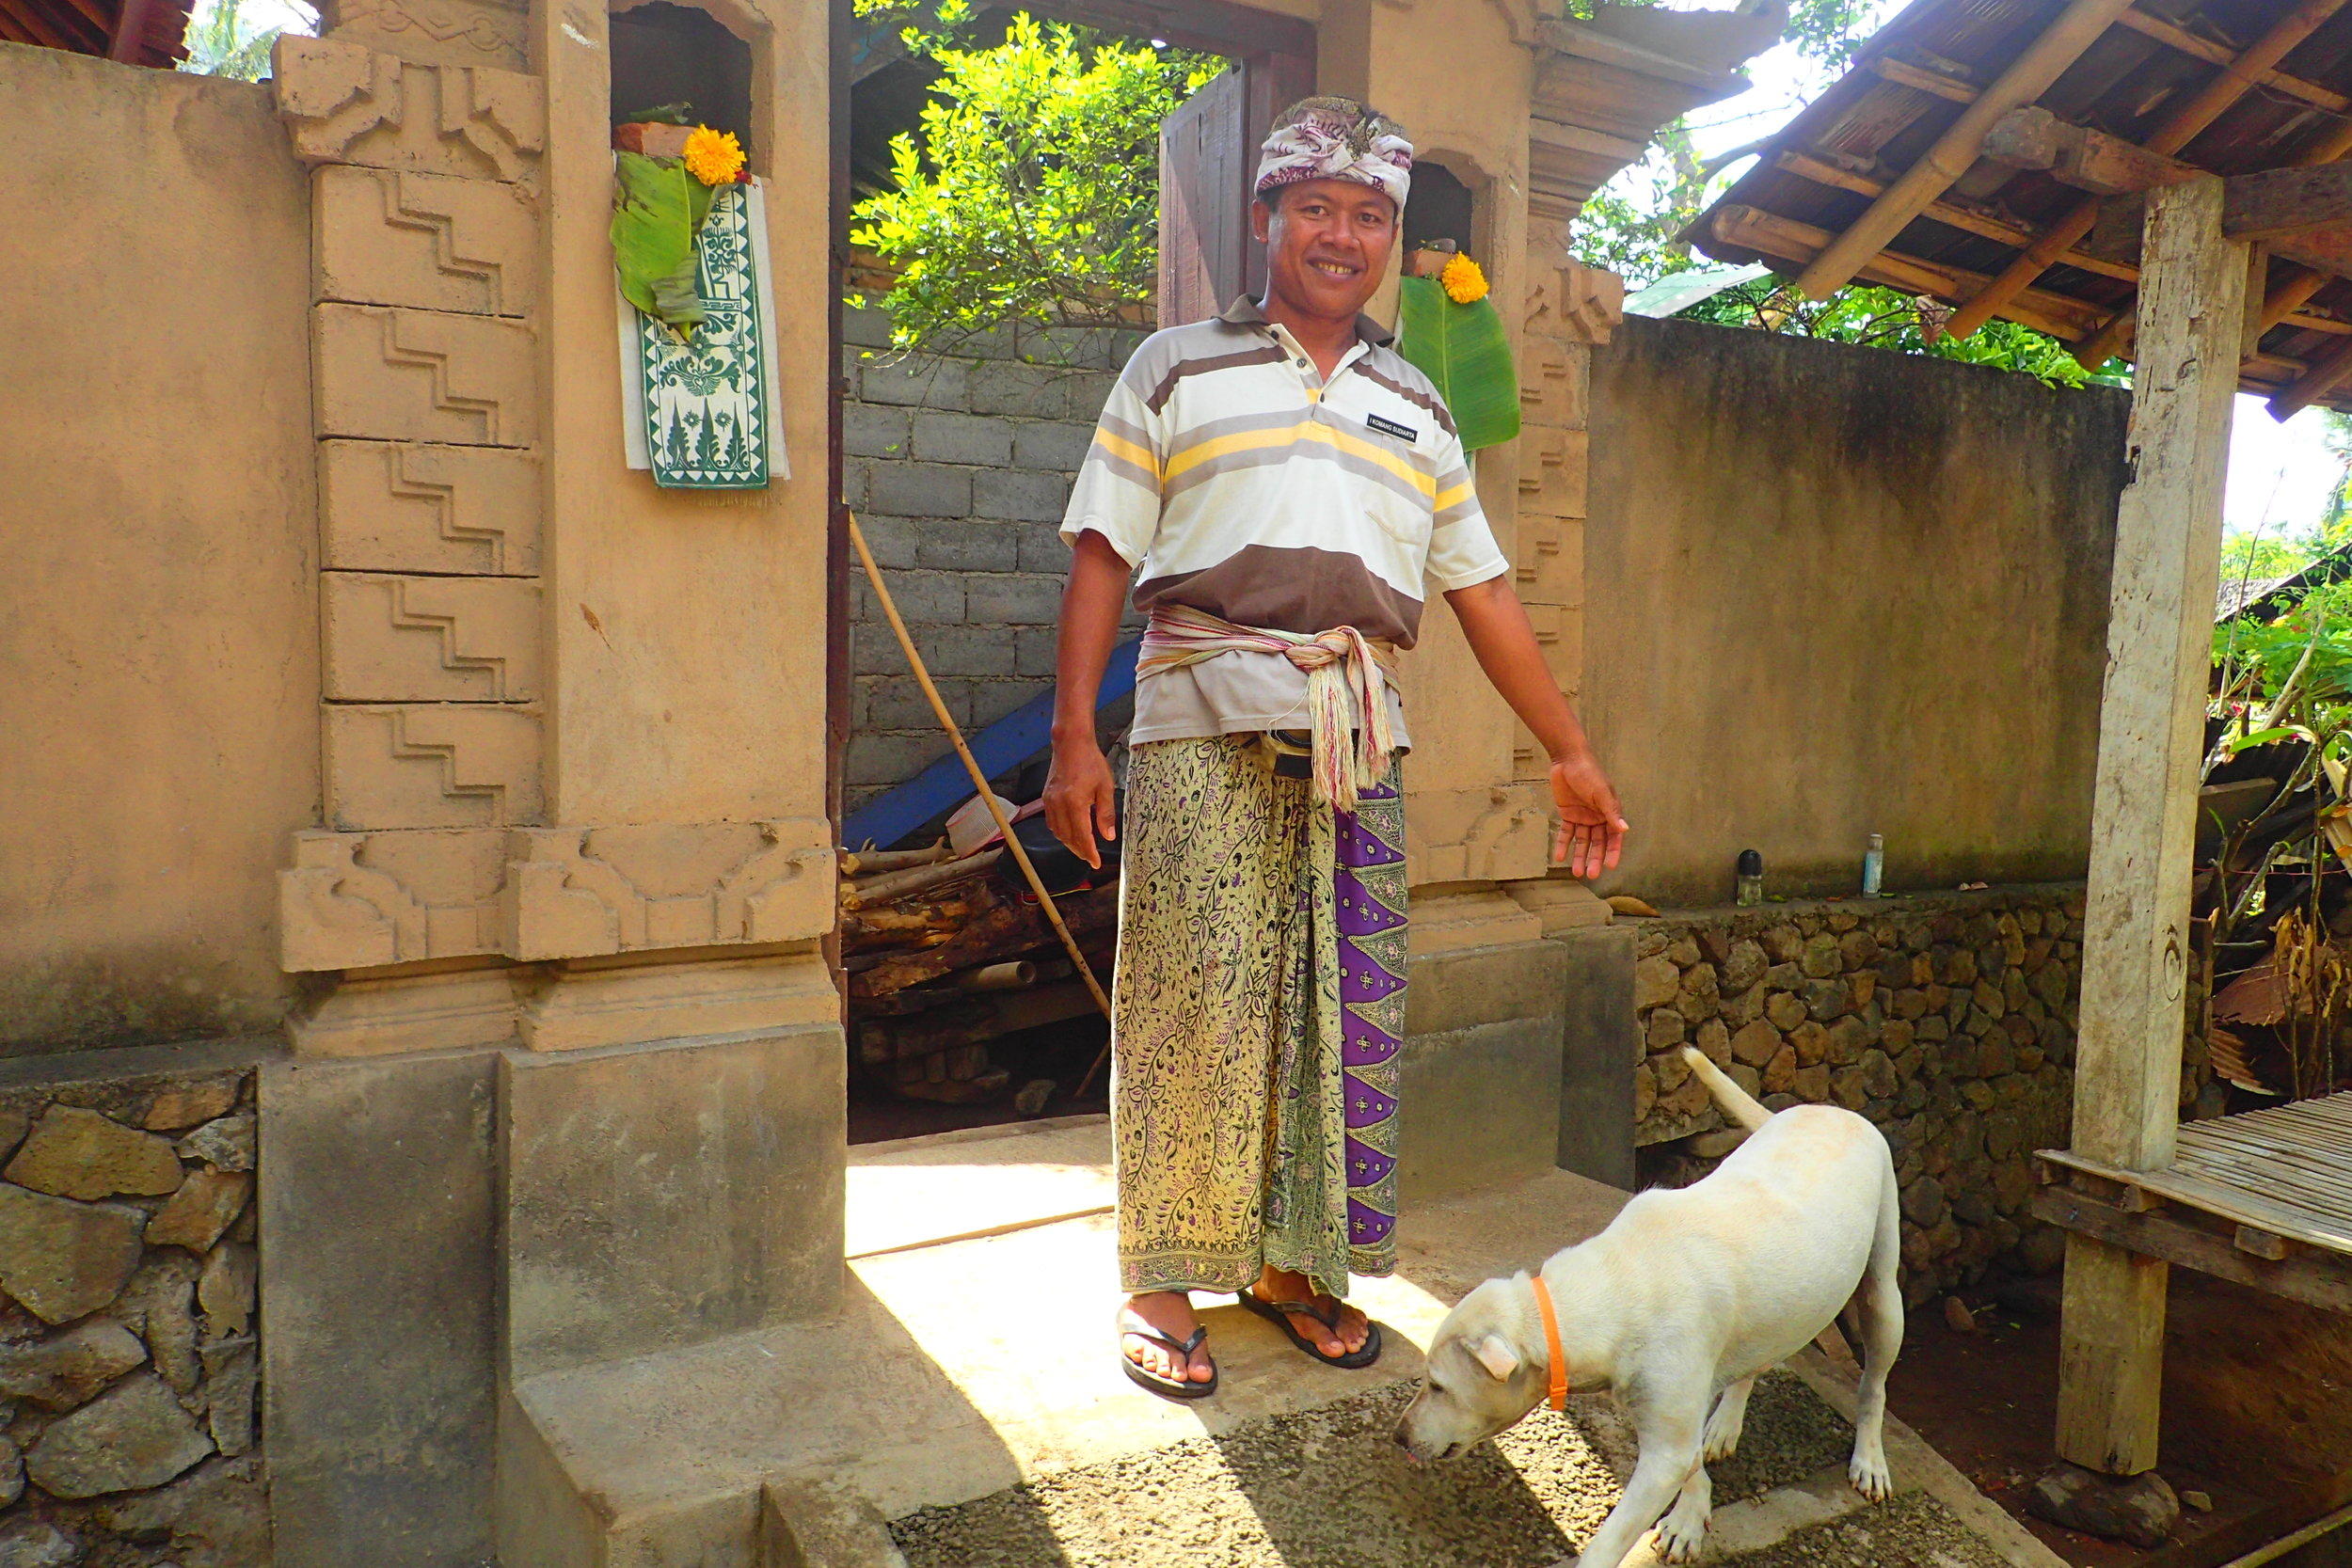 My Tenganan village guide in Bali with his family dog.